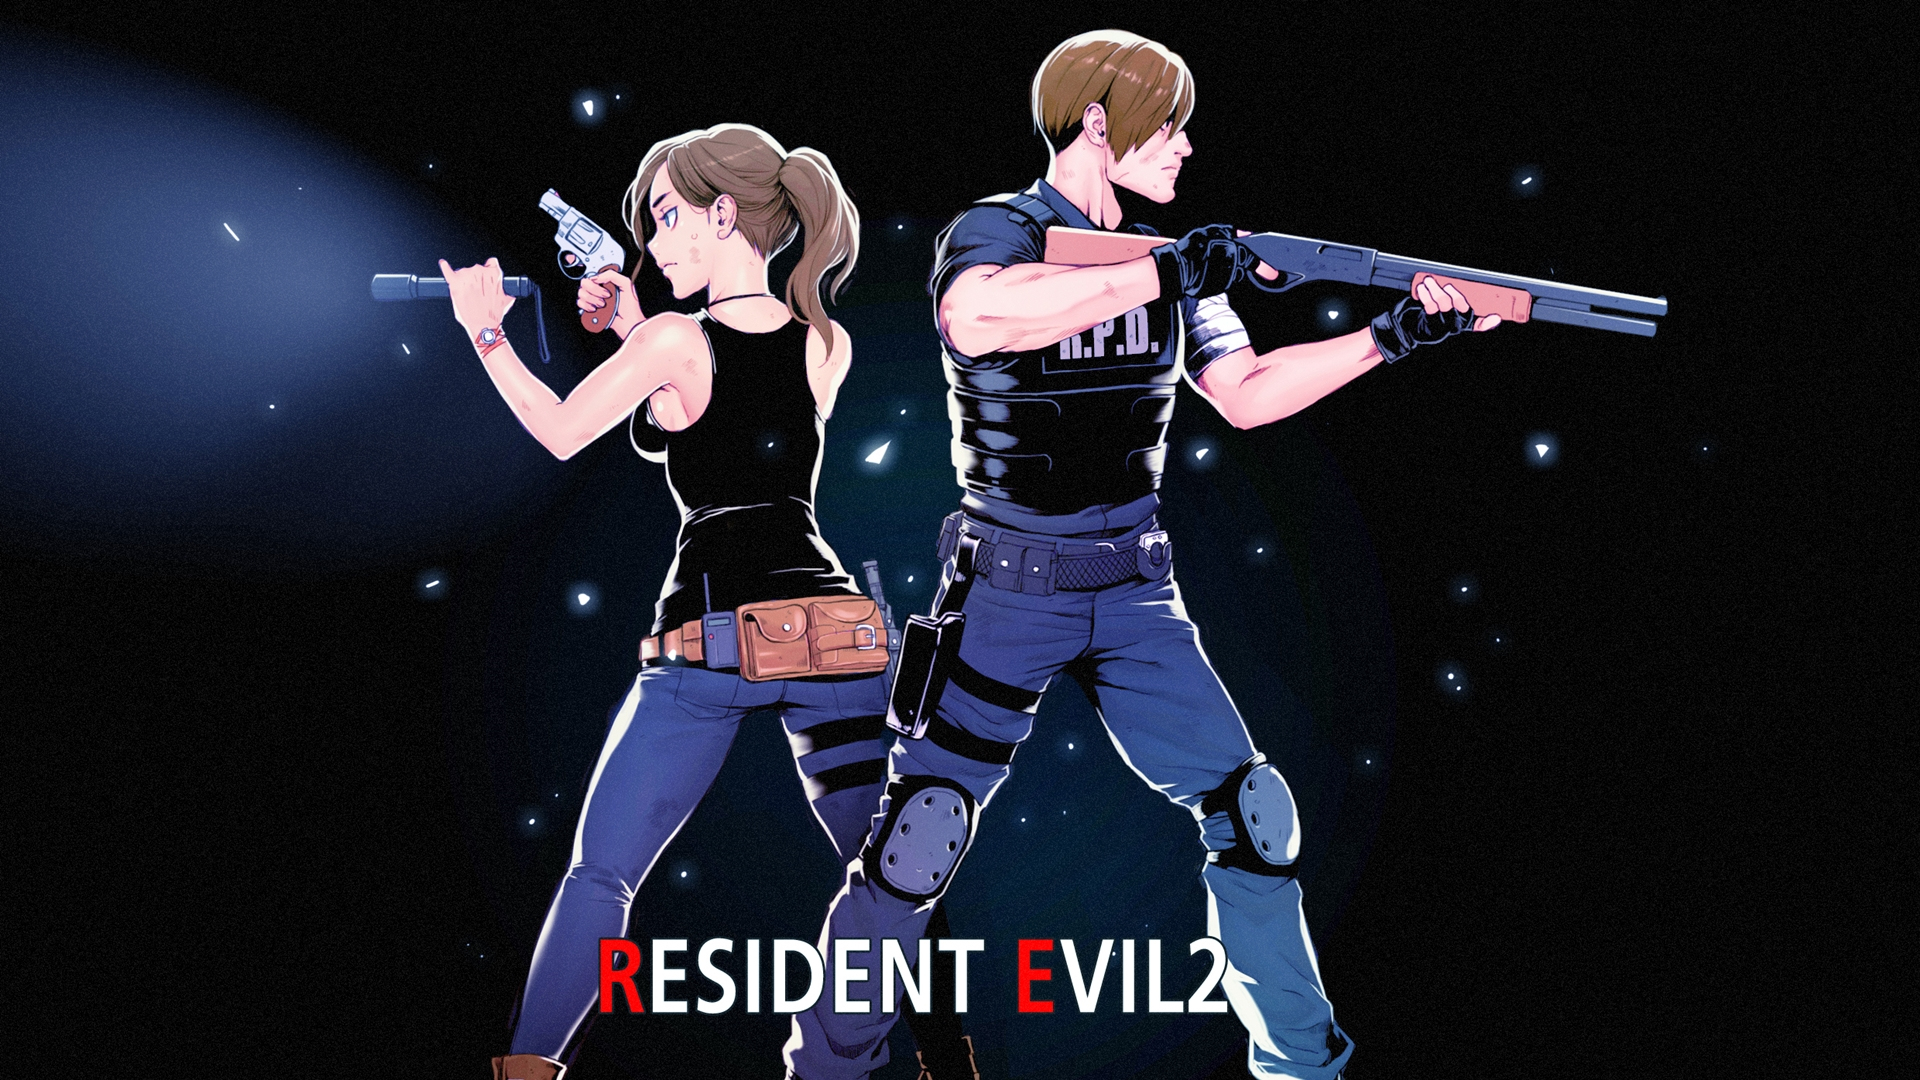 Resident Evil 2 Wallpapers Posted By Michelle Tremblay